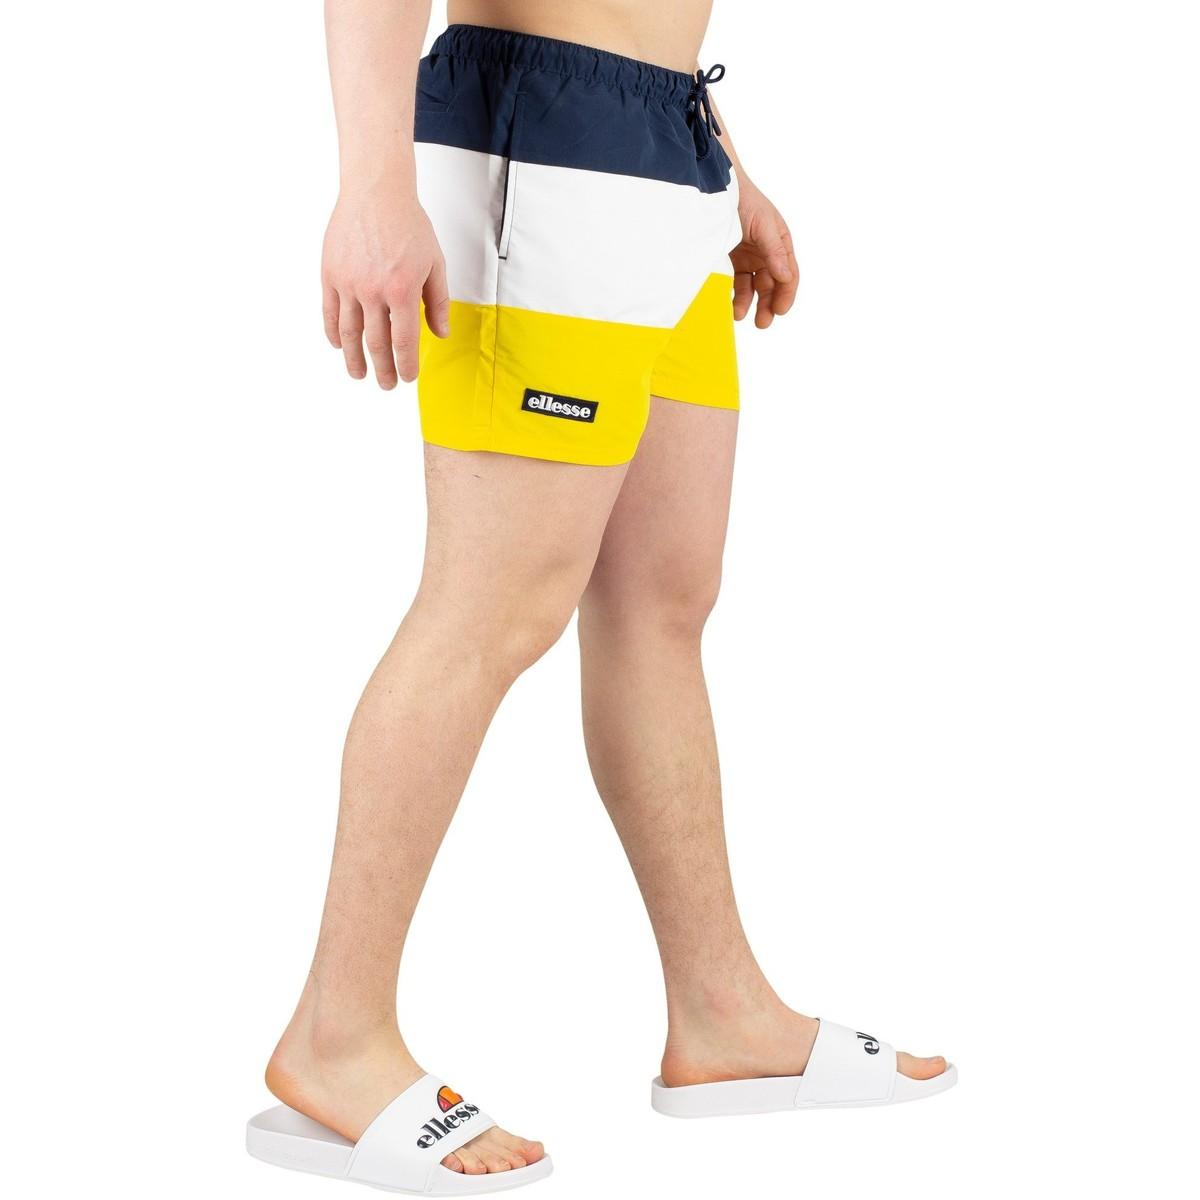 08d7d0b5fb Ellesse - Men's Cielo Swimshorts, Yellow Men's Shorts In Yellow for Men -  Lyst. View fullscreen